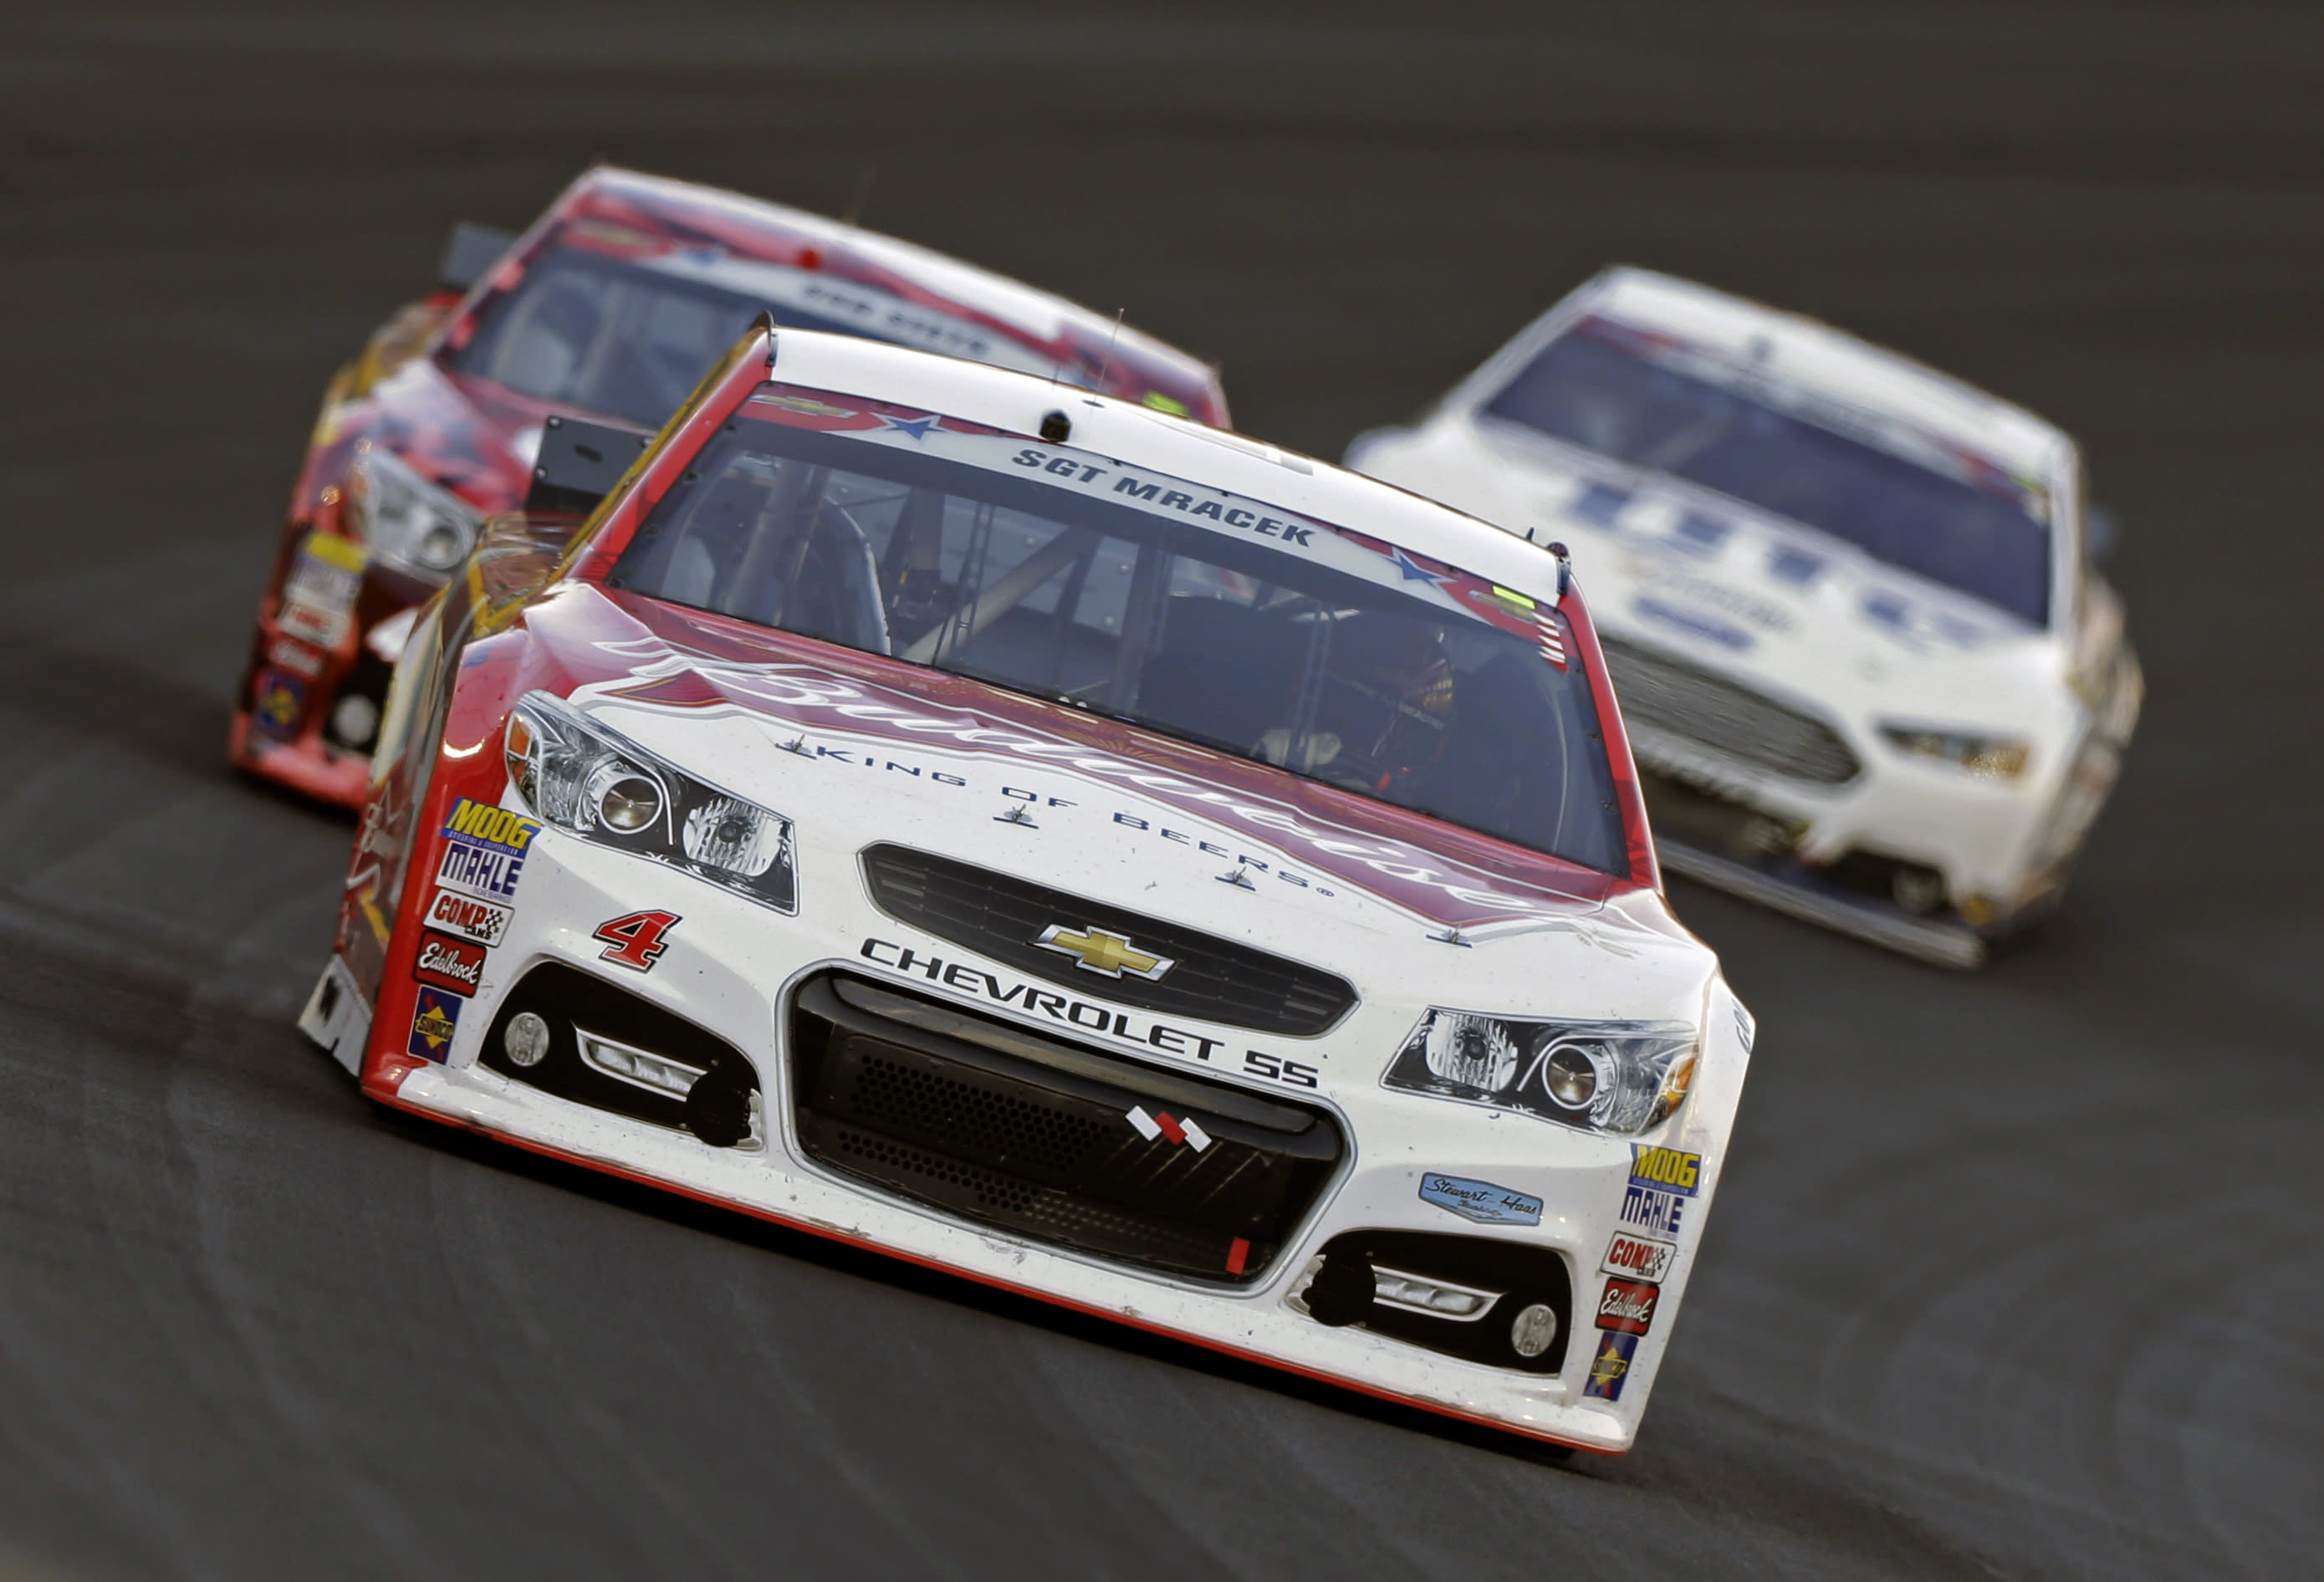 Power Rankings: Harvick takes the top spot back